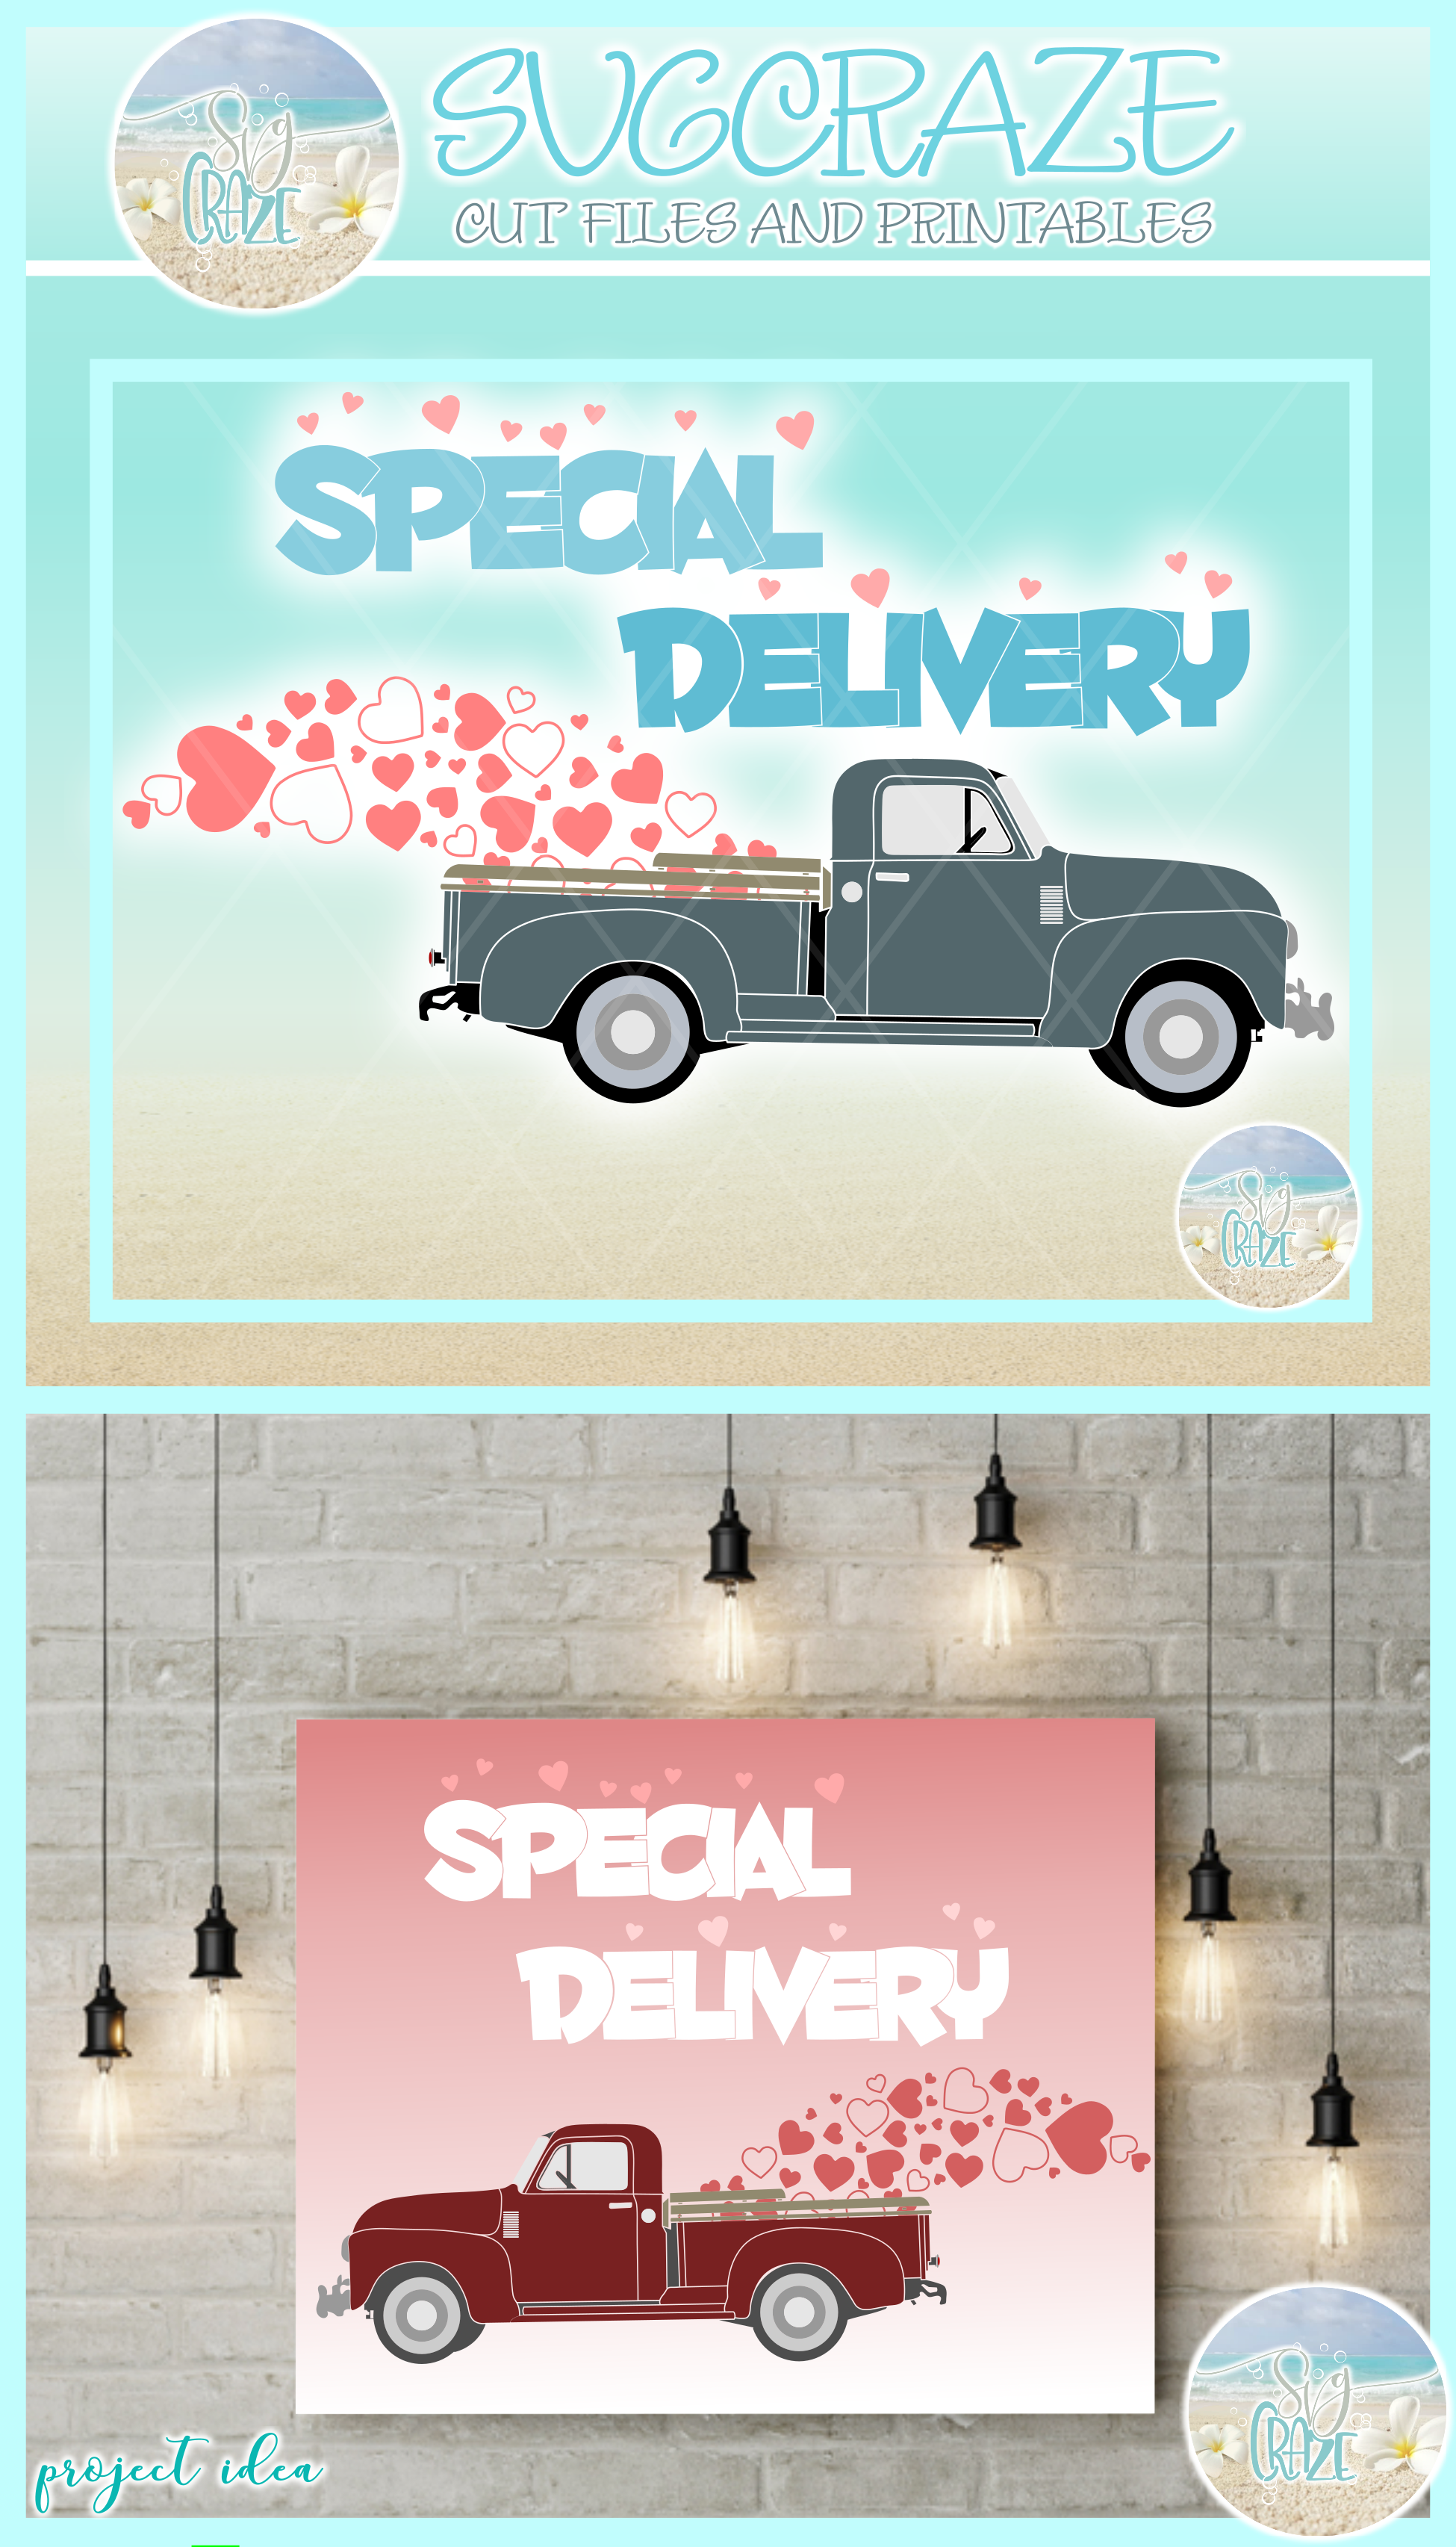 Valentines Day Special Delivery Truck Svg Dxf Eps Png Pdf example image 4